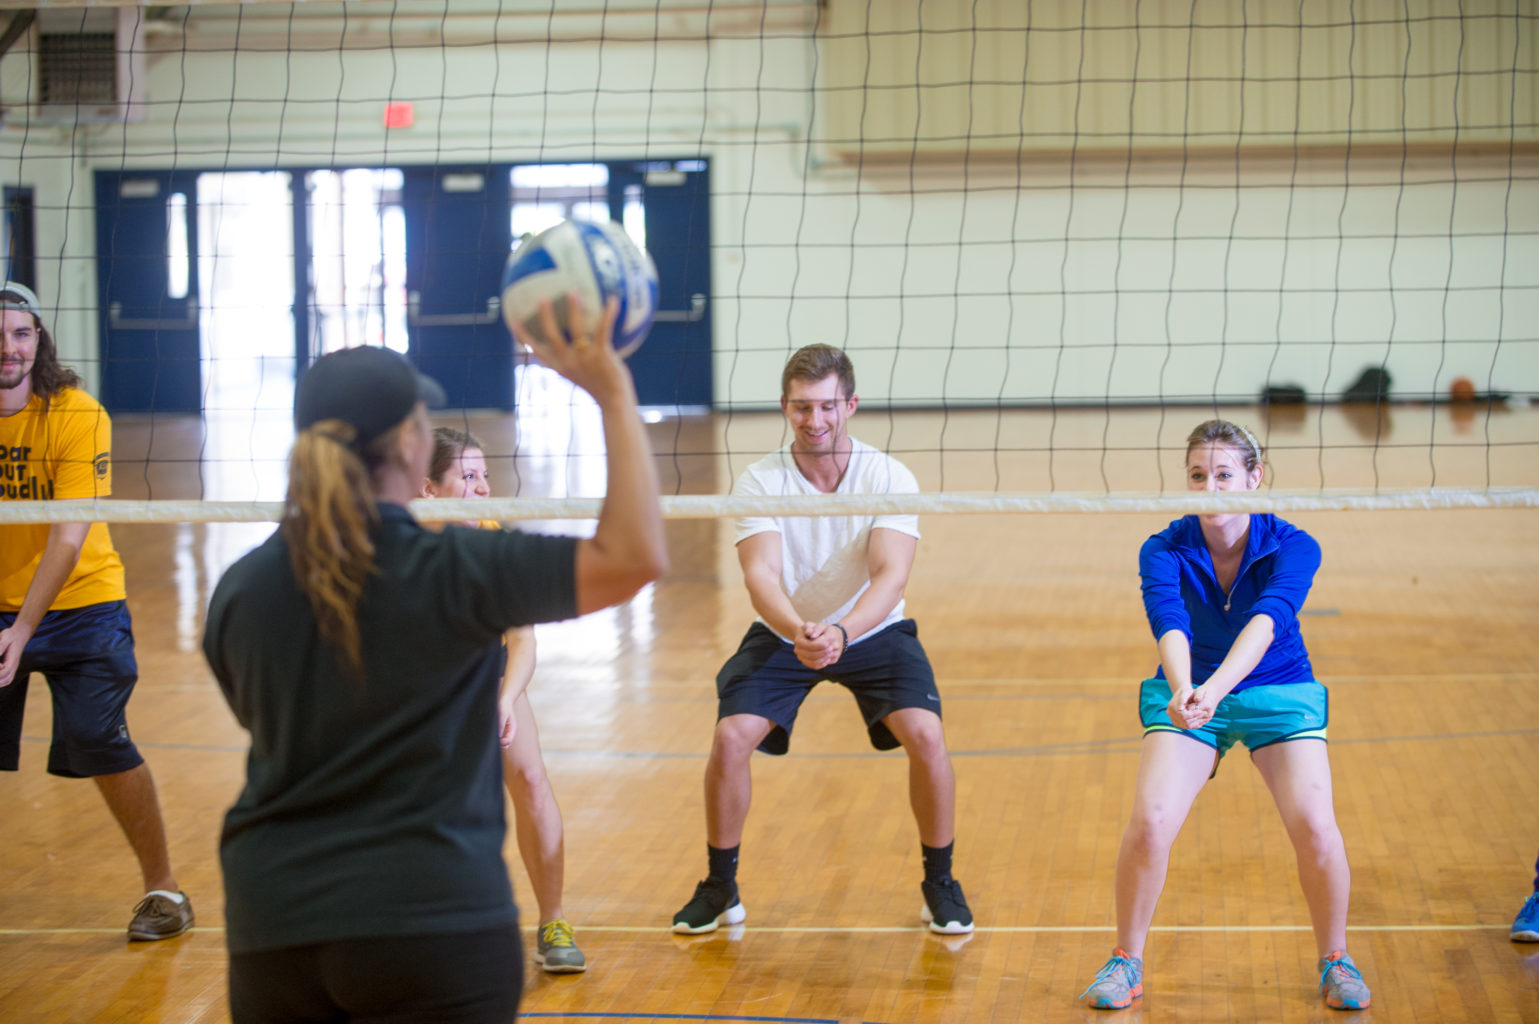 Student learning volleyball inside the Gym in the Commerce campus.